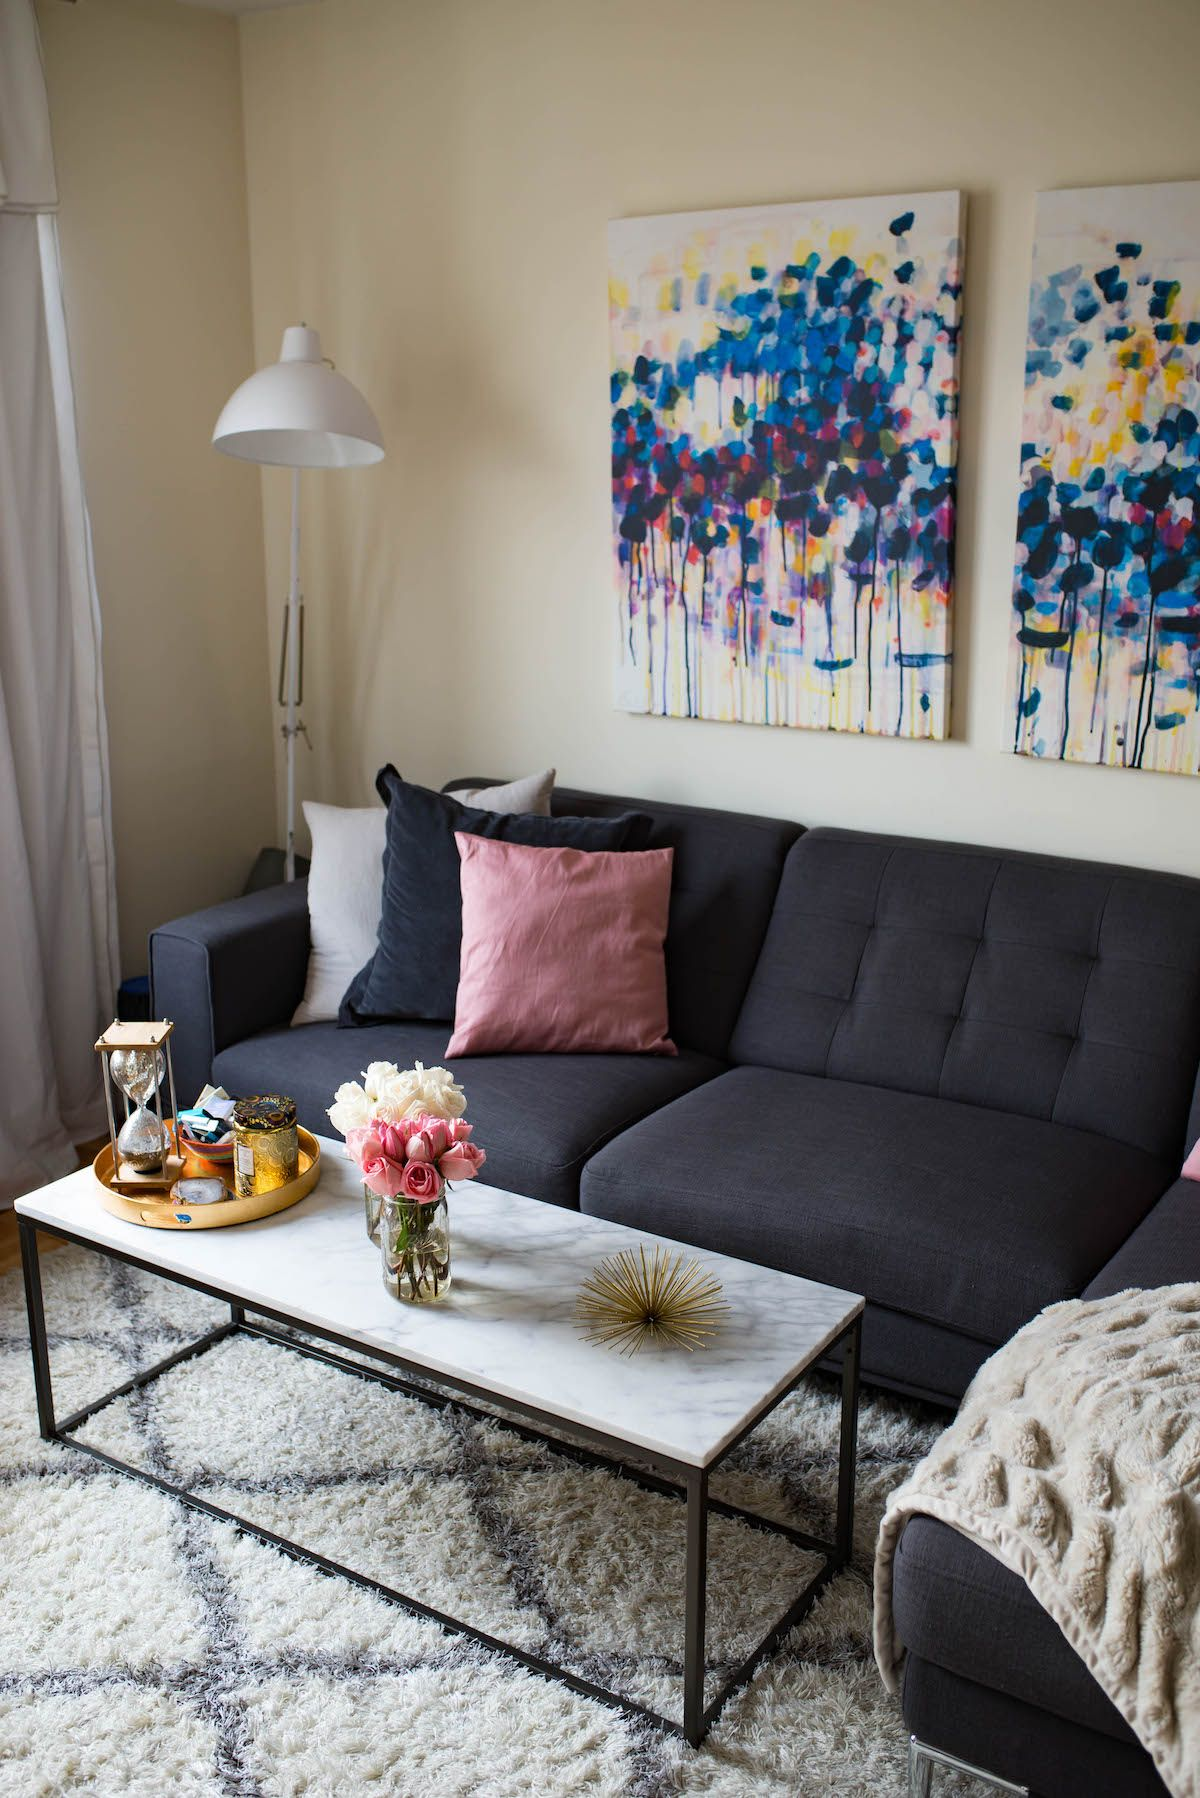 Living Room Update Ideas: Home Decor Update (With Images)